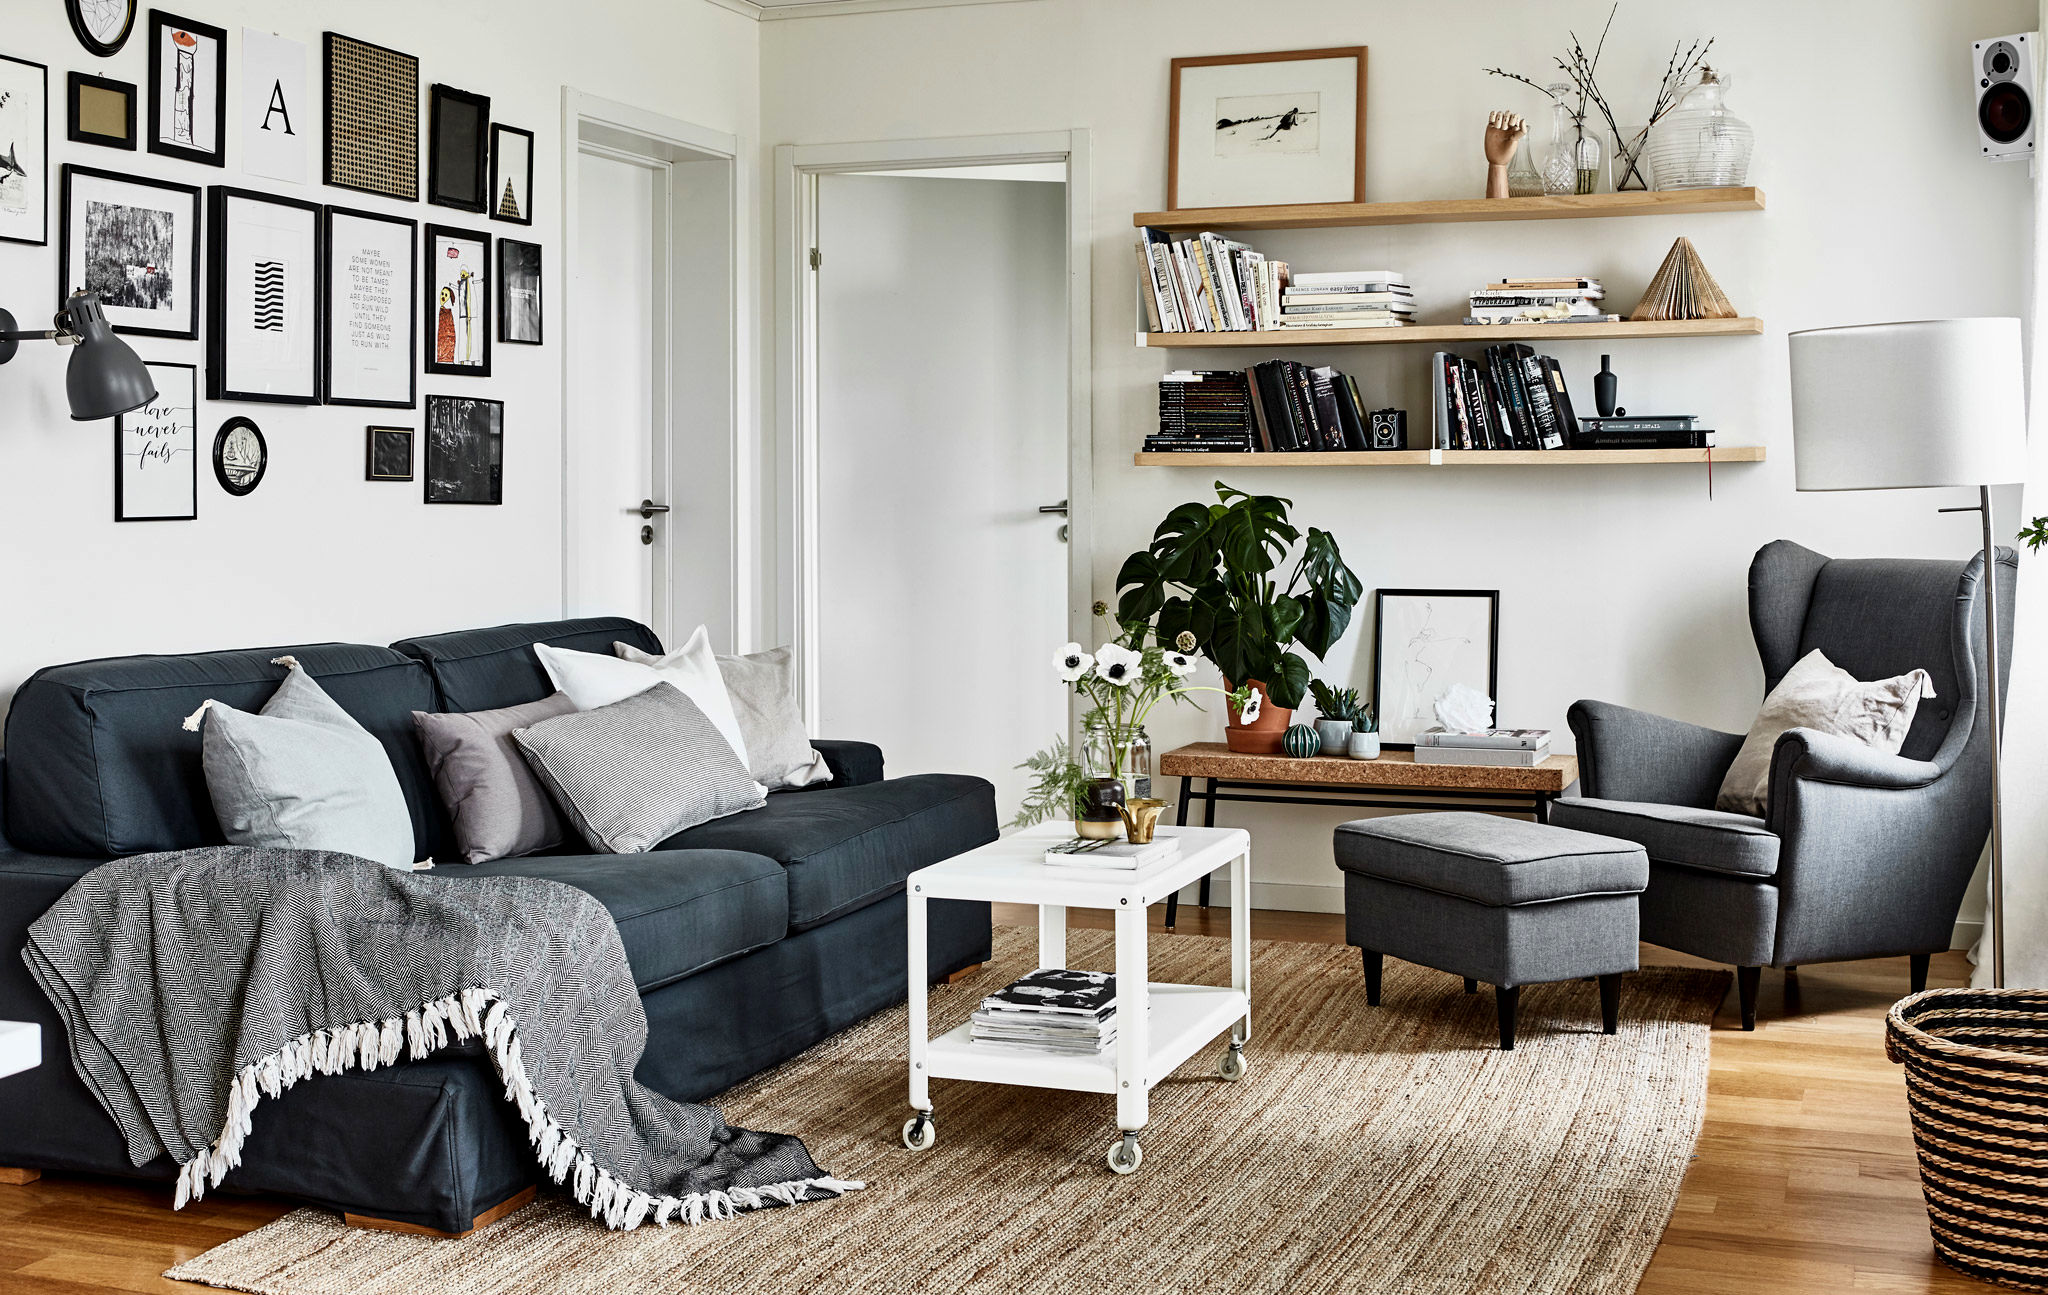 modern ikea soderhamn sofa ideas-Superb Ikea soderhamn sofa Pattern